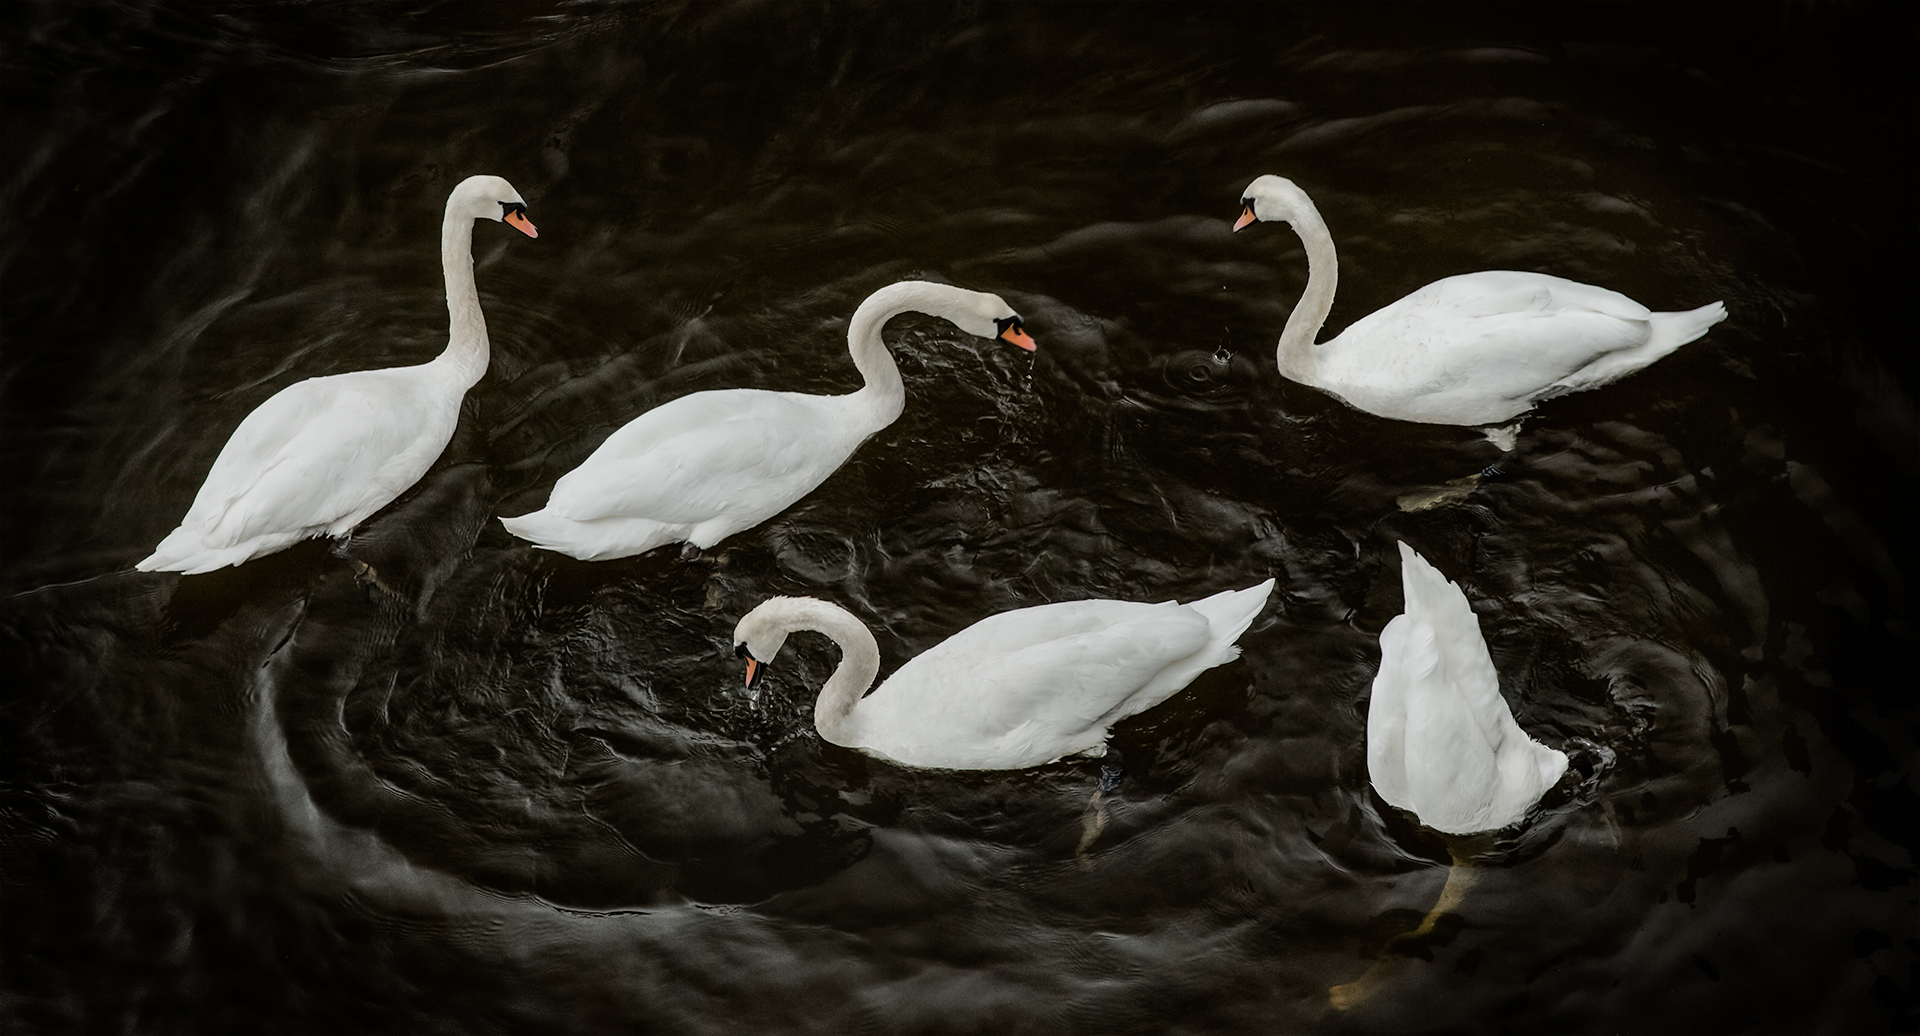 Circling Swans, by Christopher Priebe. All rights reserved.